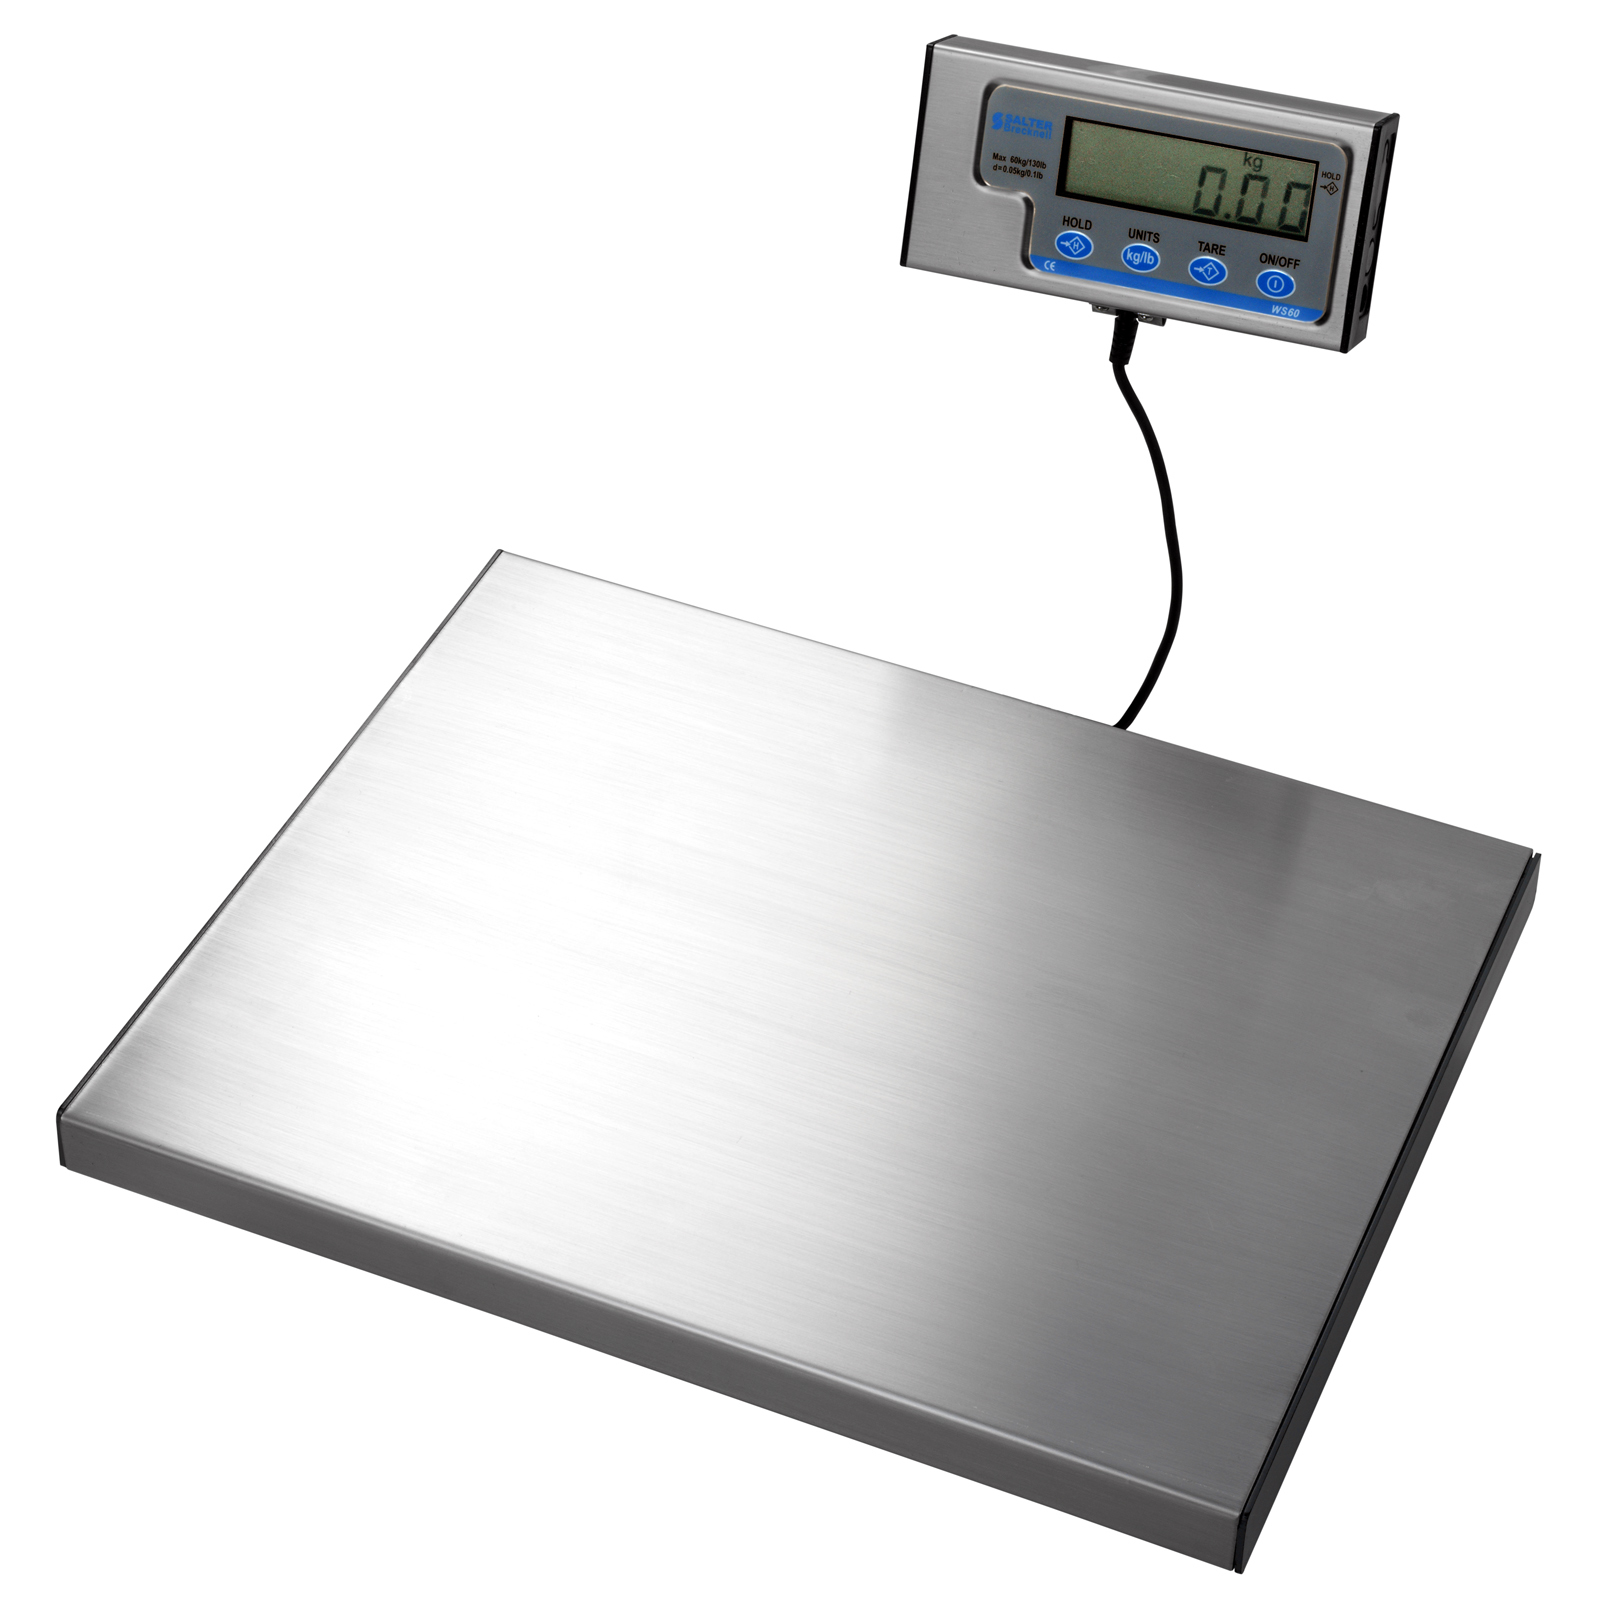 Small Platform Parcel Scale 380x300mm Up to 120Kg Capacity with .1g Increments